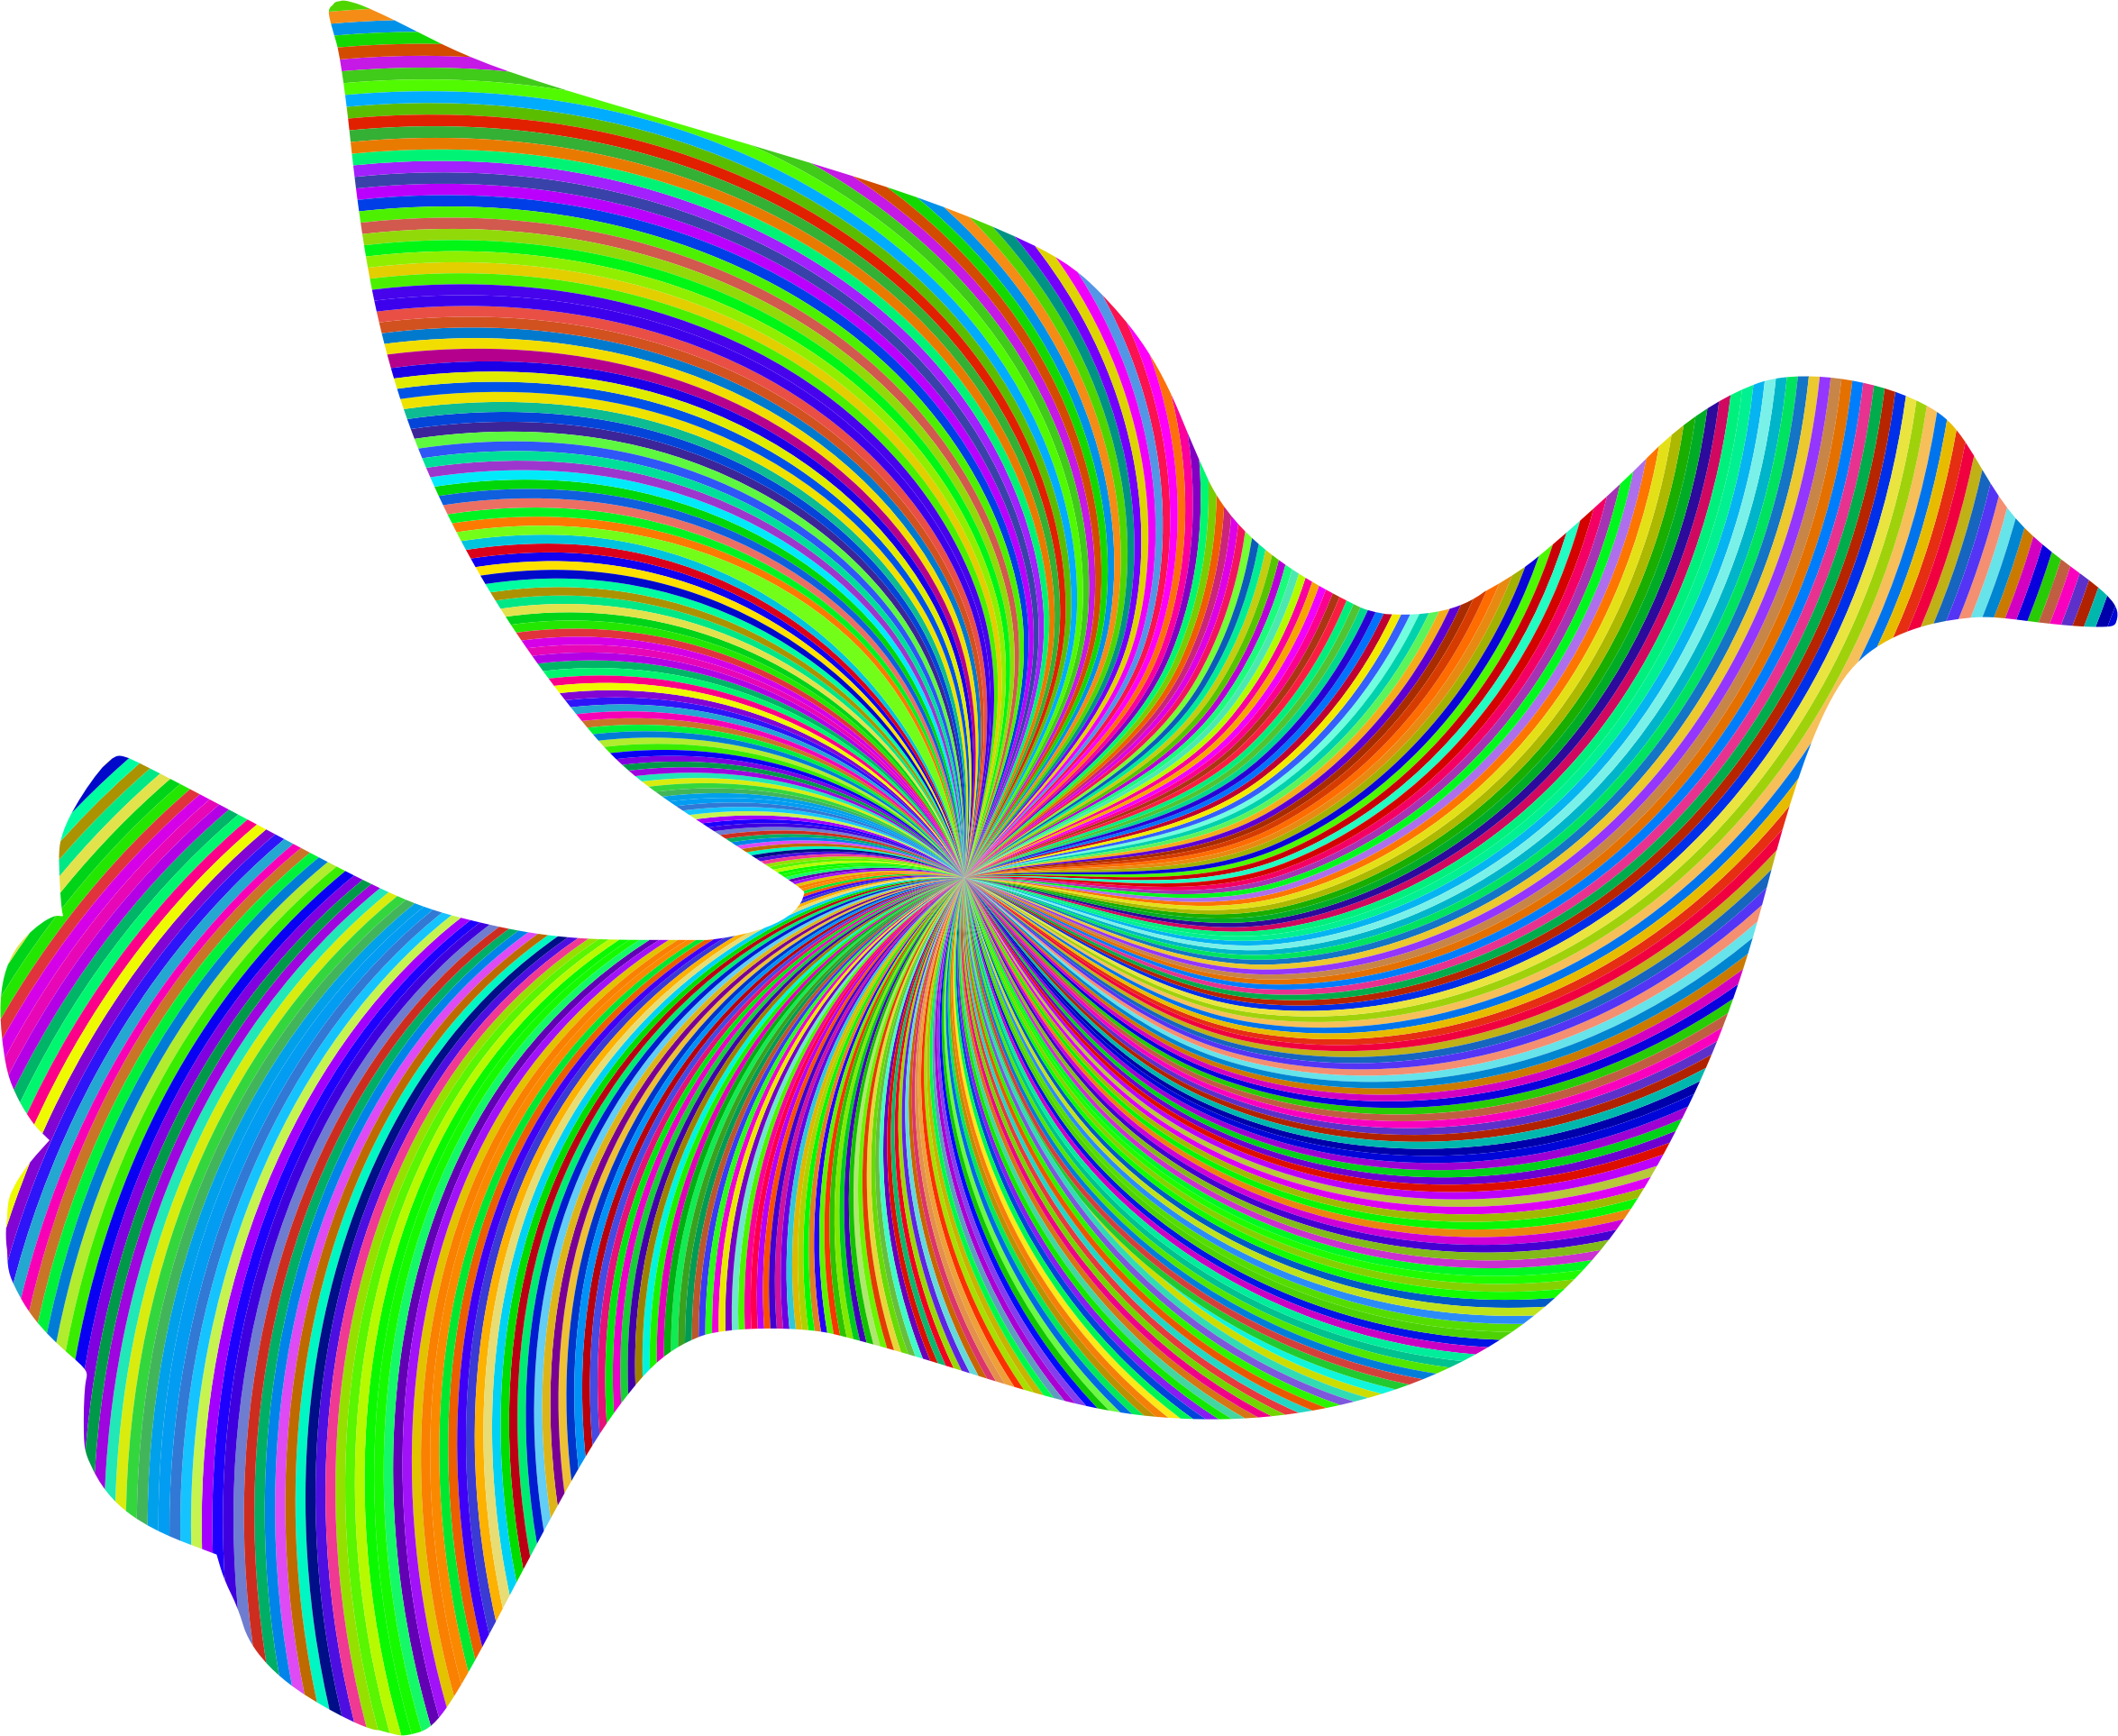 Sixties dove icons png. Peace clipart world peace